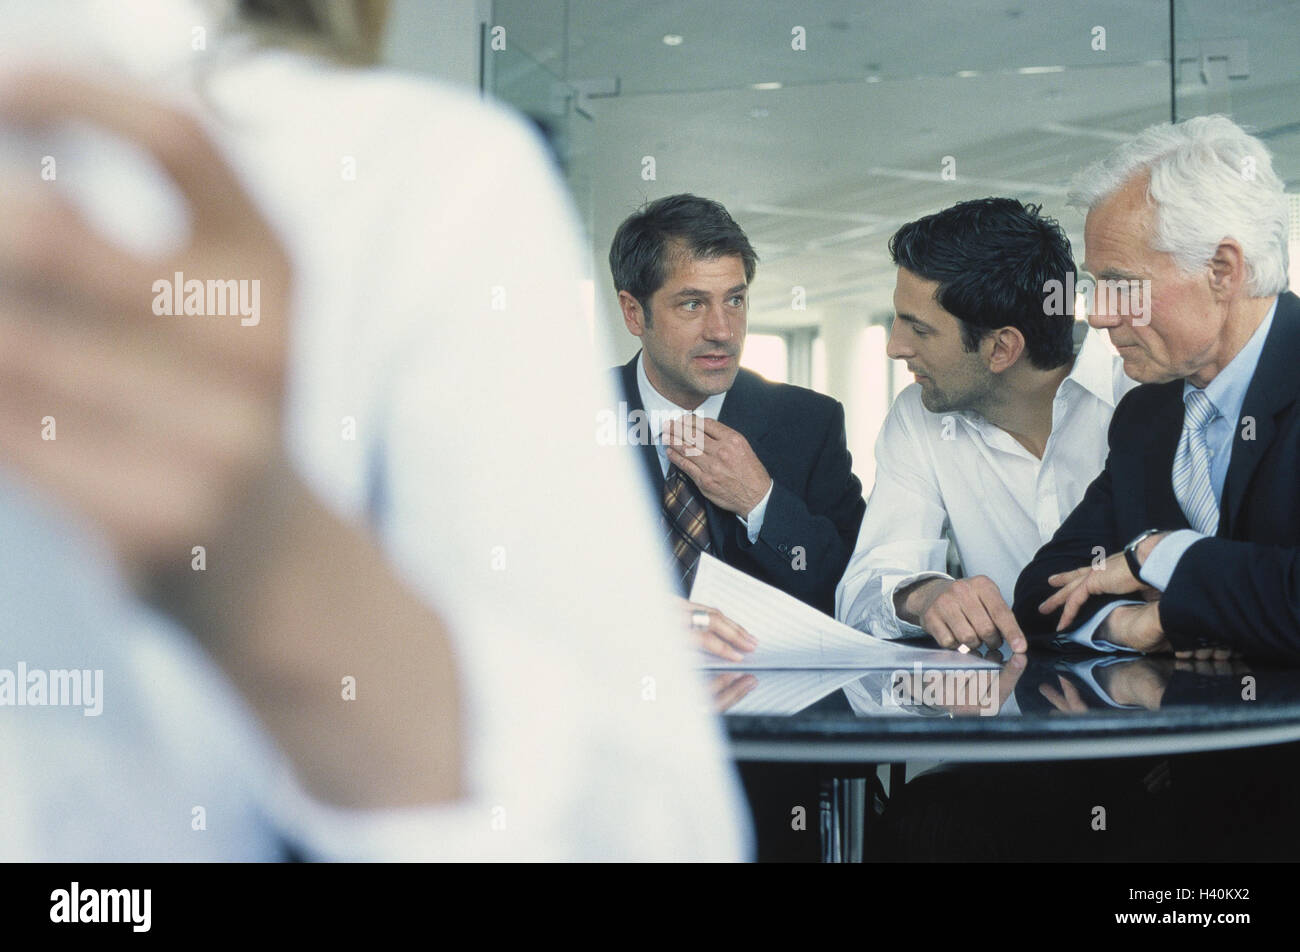 Business, business people, bases, discussion, conference, men, woman, colleague, team, work, occupation, meeting, - Stock Image